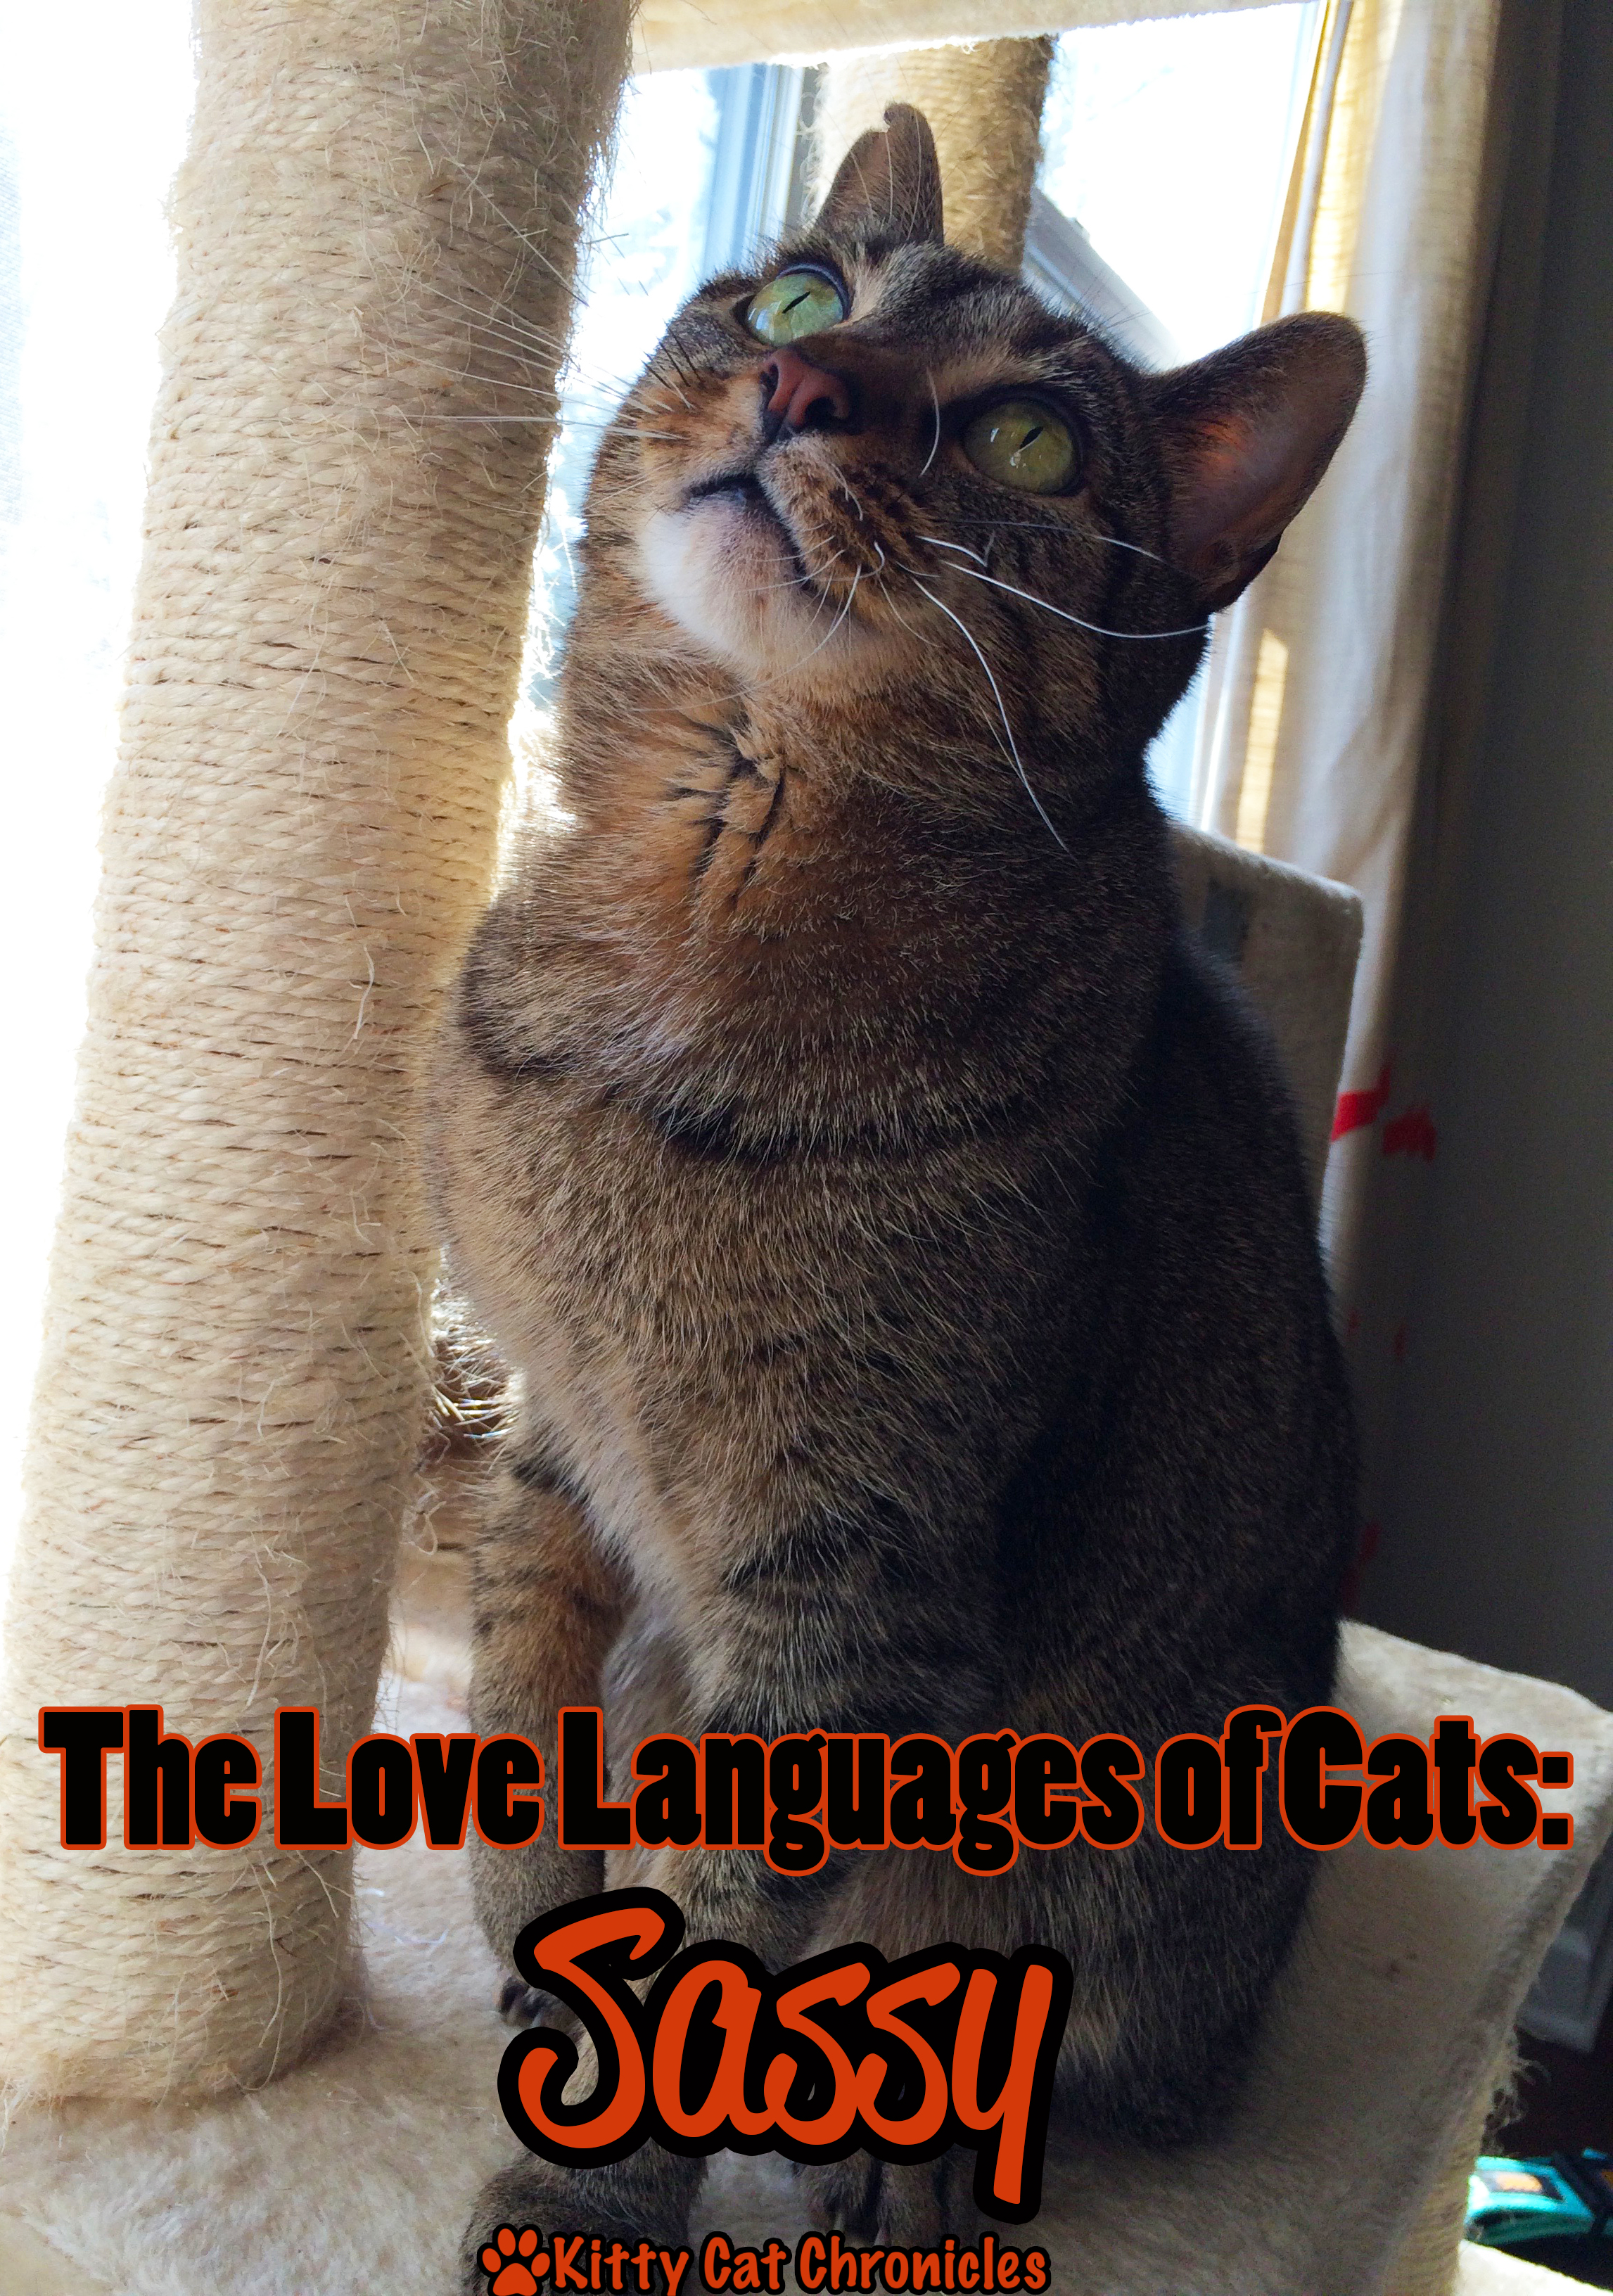 The Love Languages of Cats: Sassy